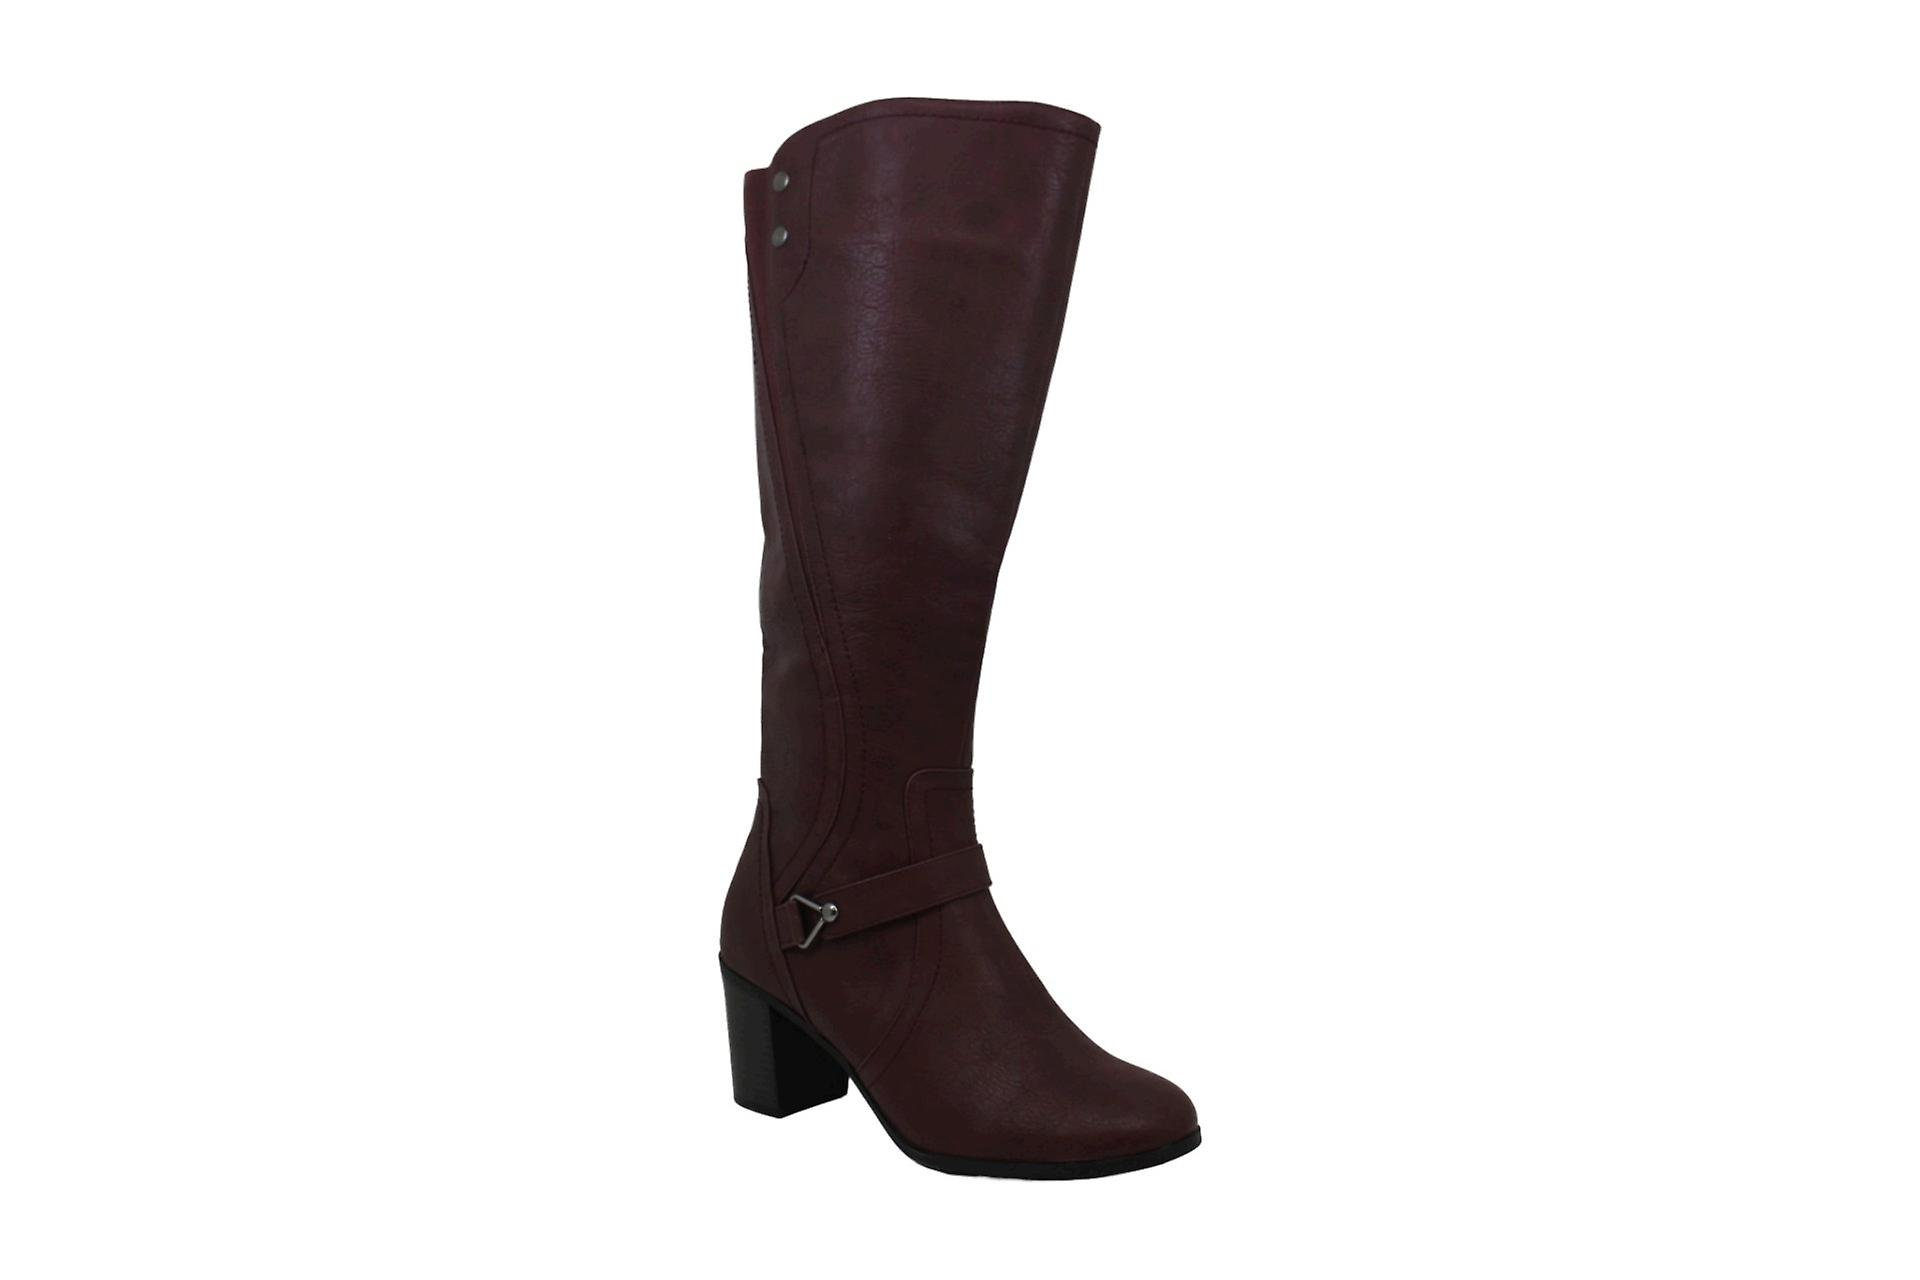 Easy Street Womens format Leather Almond Toe Knee High Fashion Boots